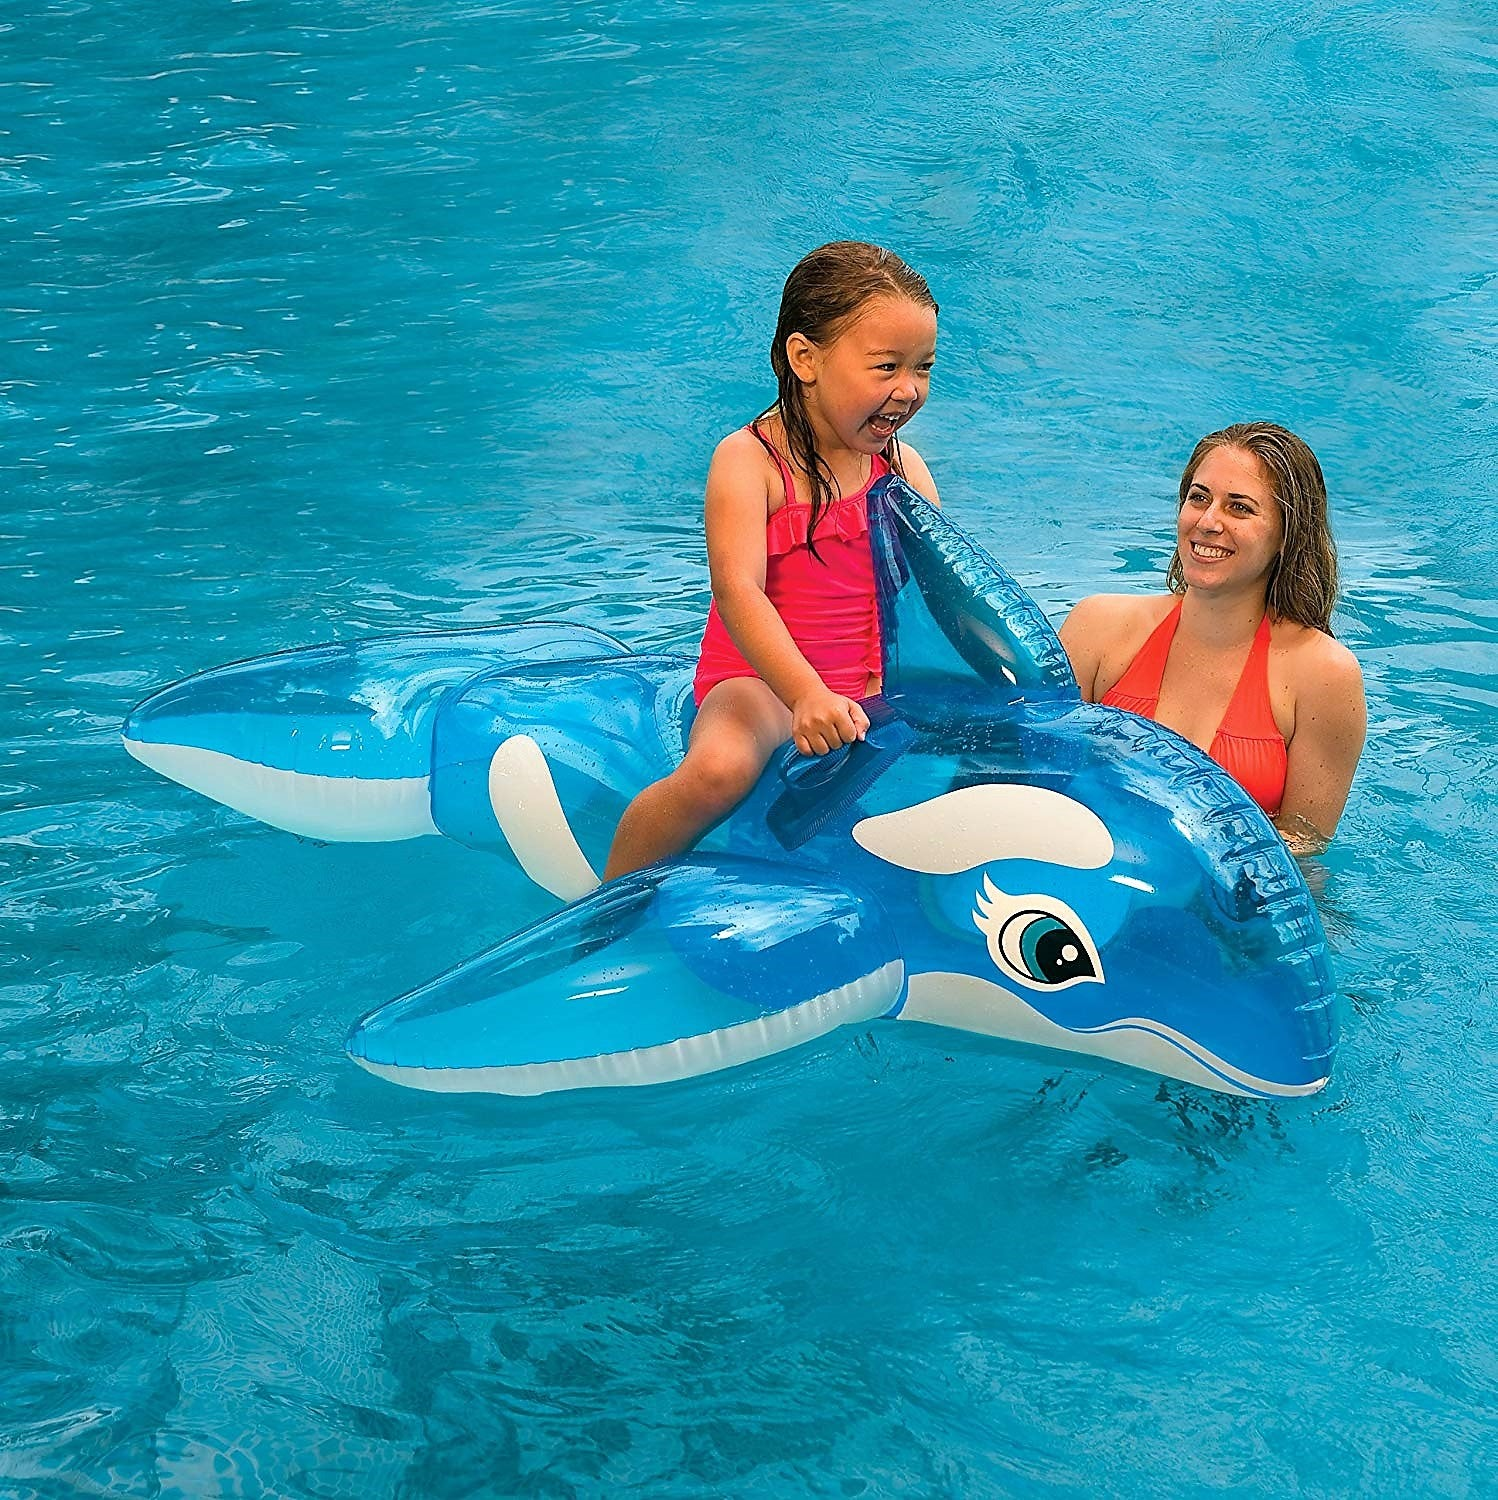 The Blue Dolphin Pool Float for kids